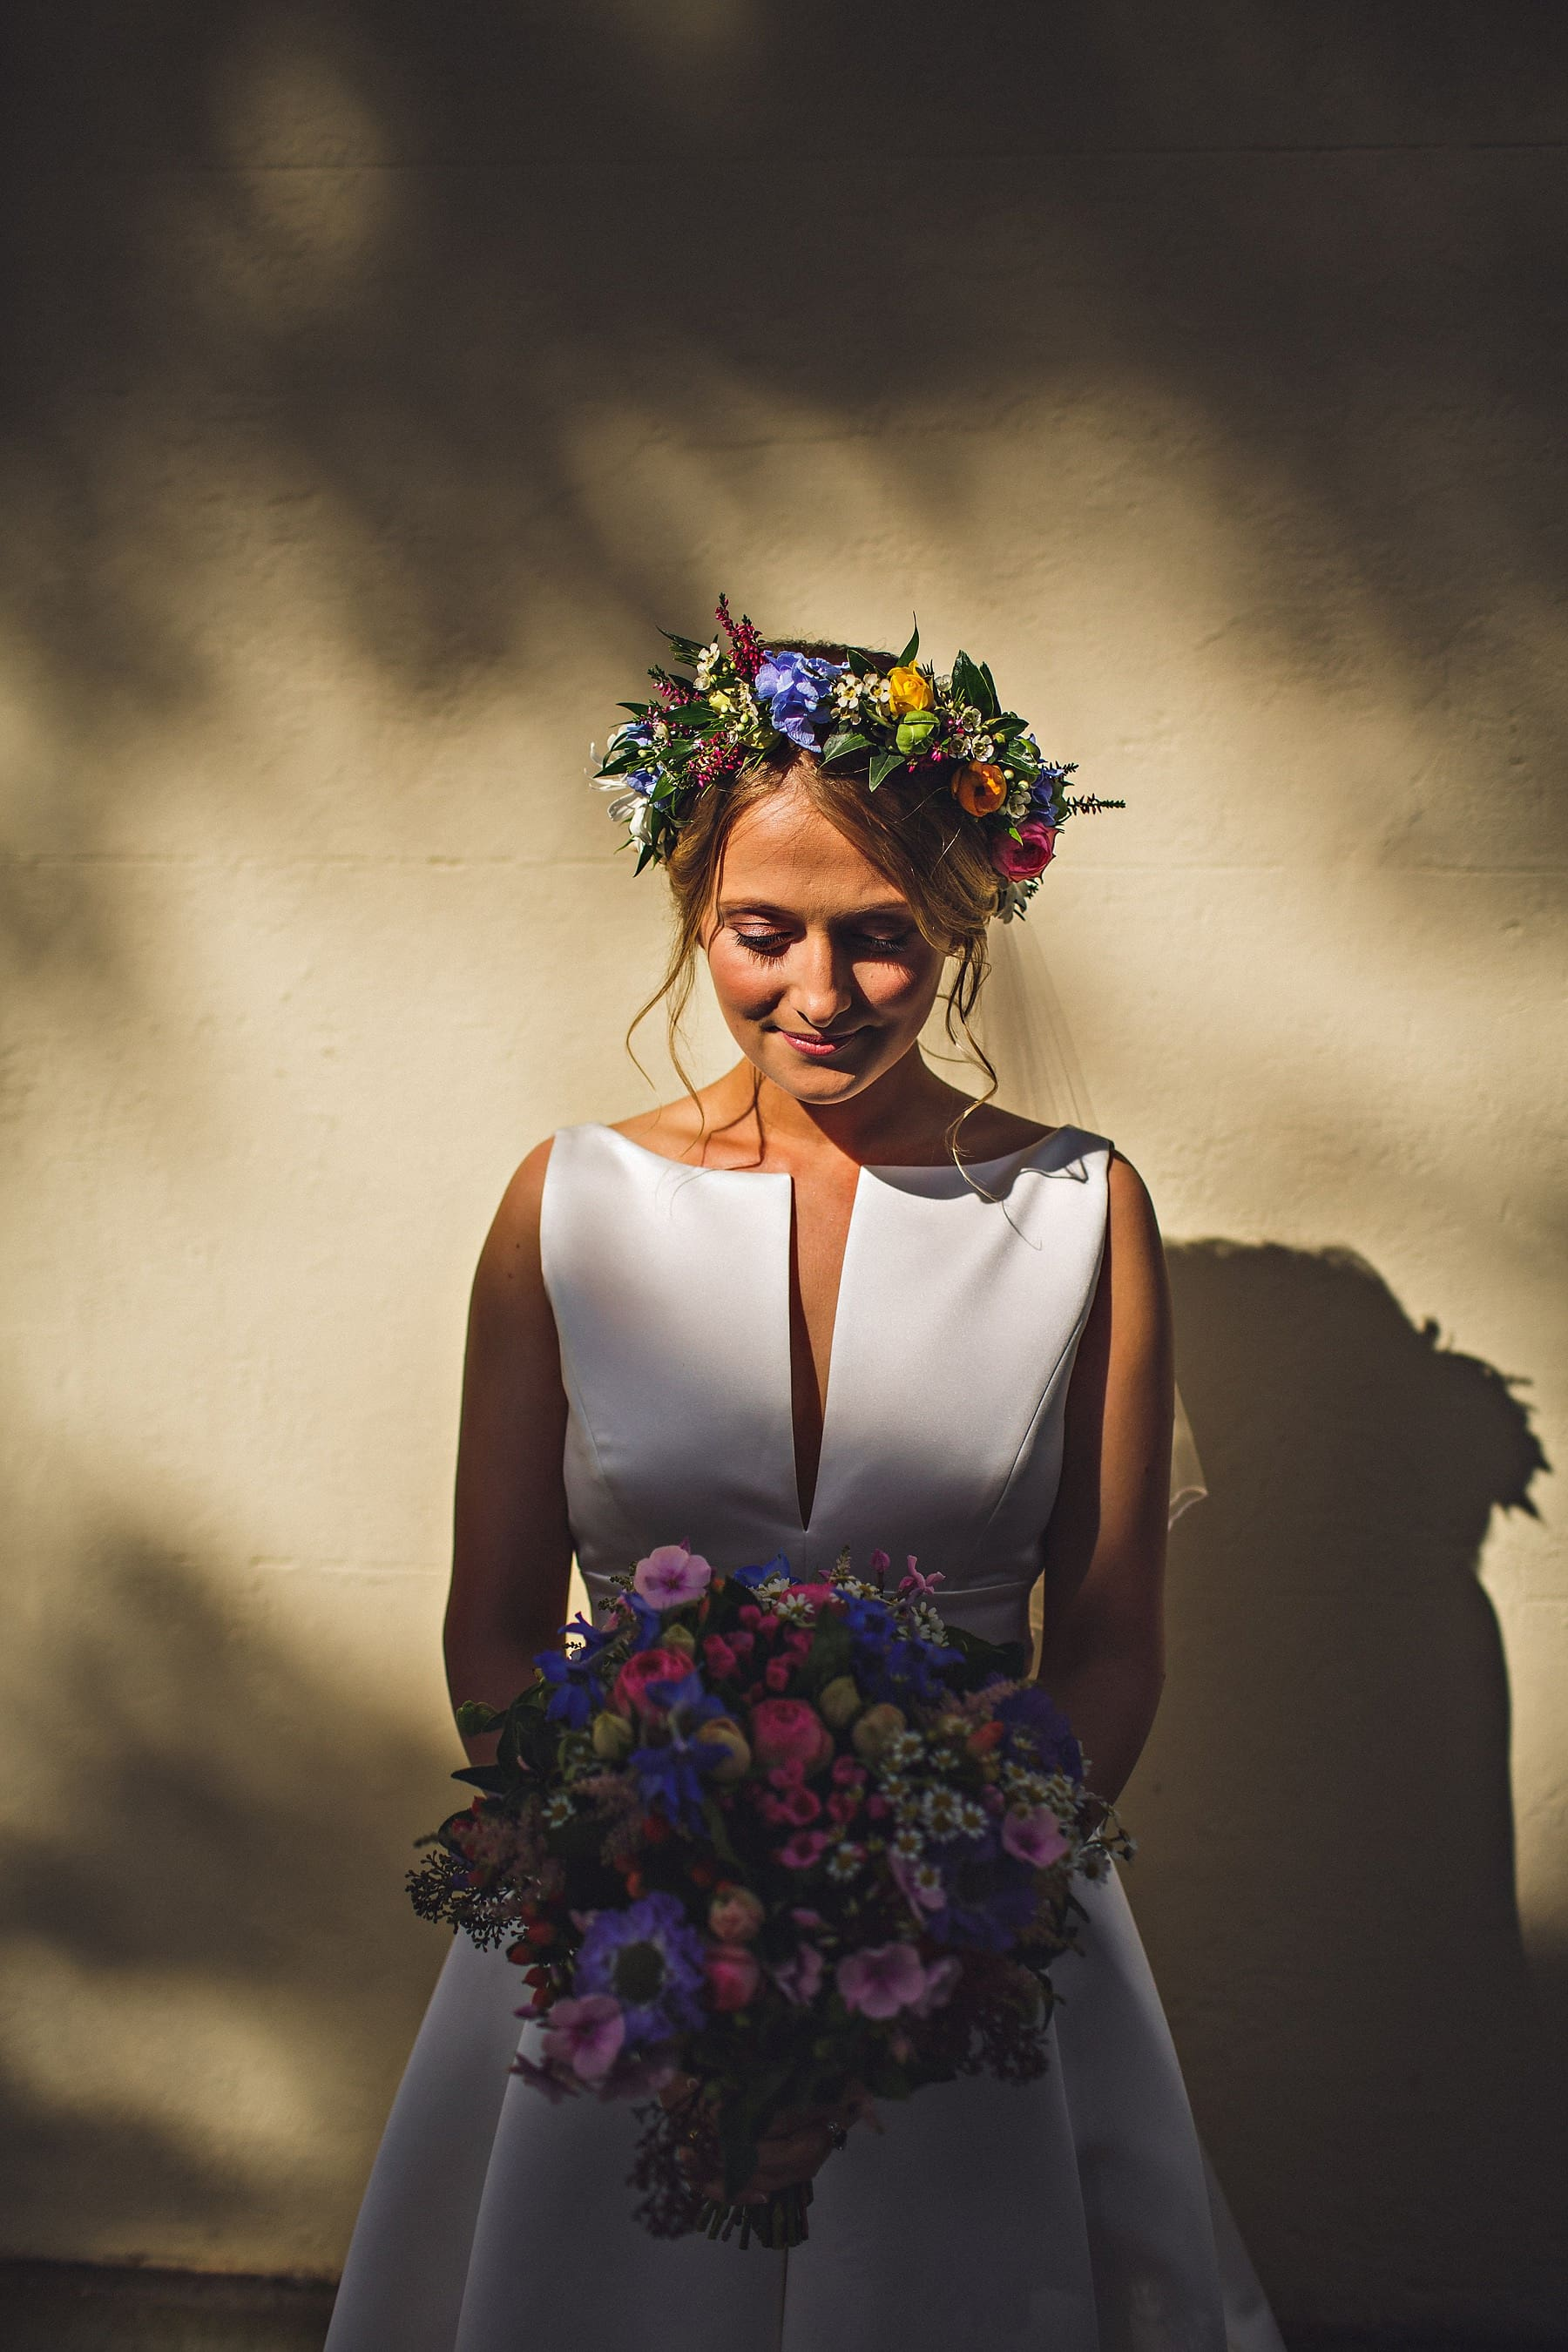 Bride Flower Crown Wales Wedding Photographer,